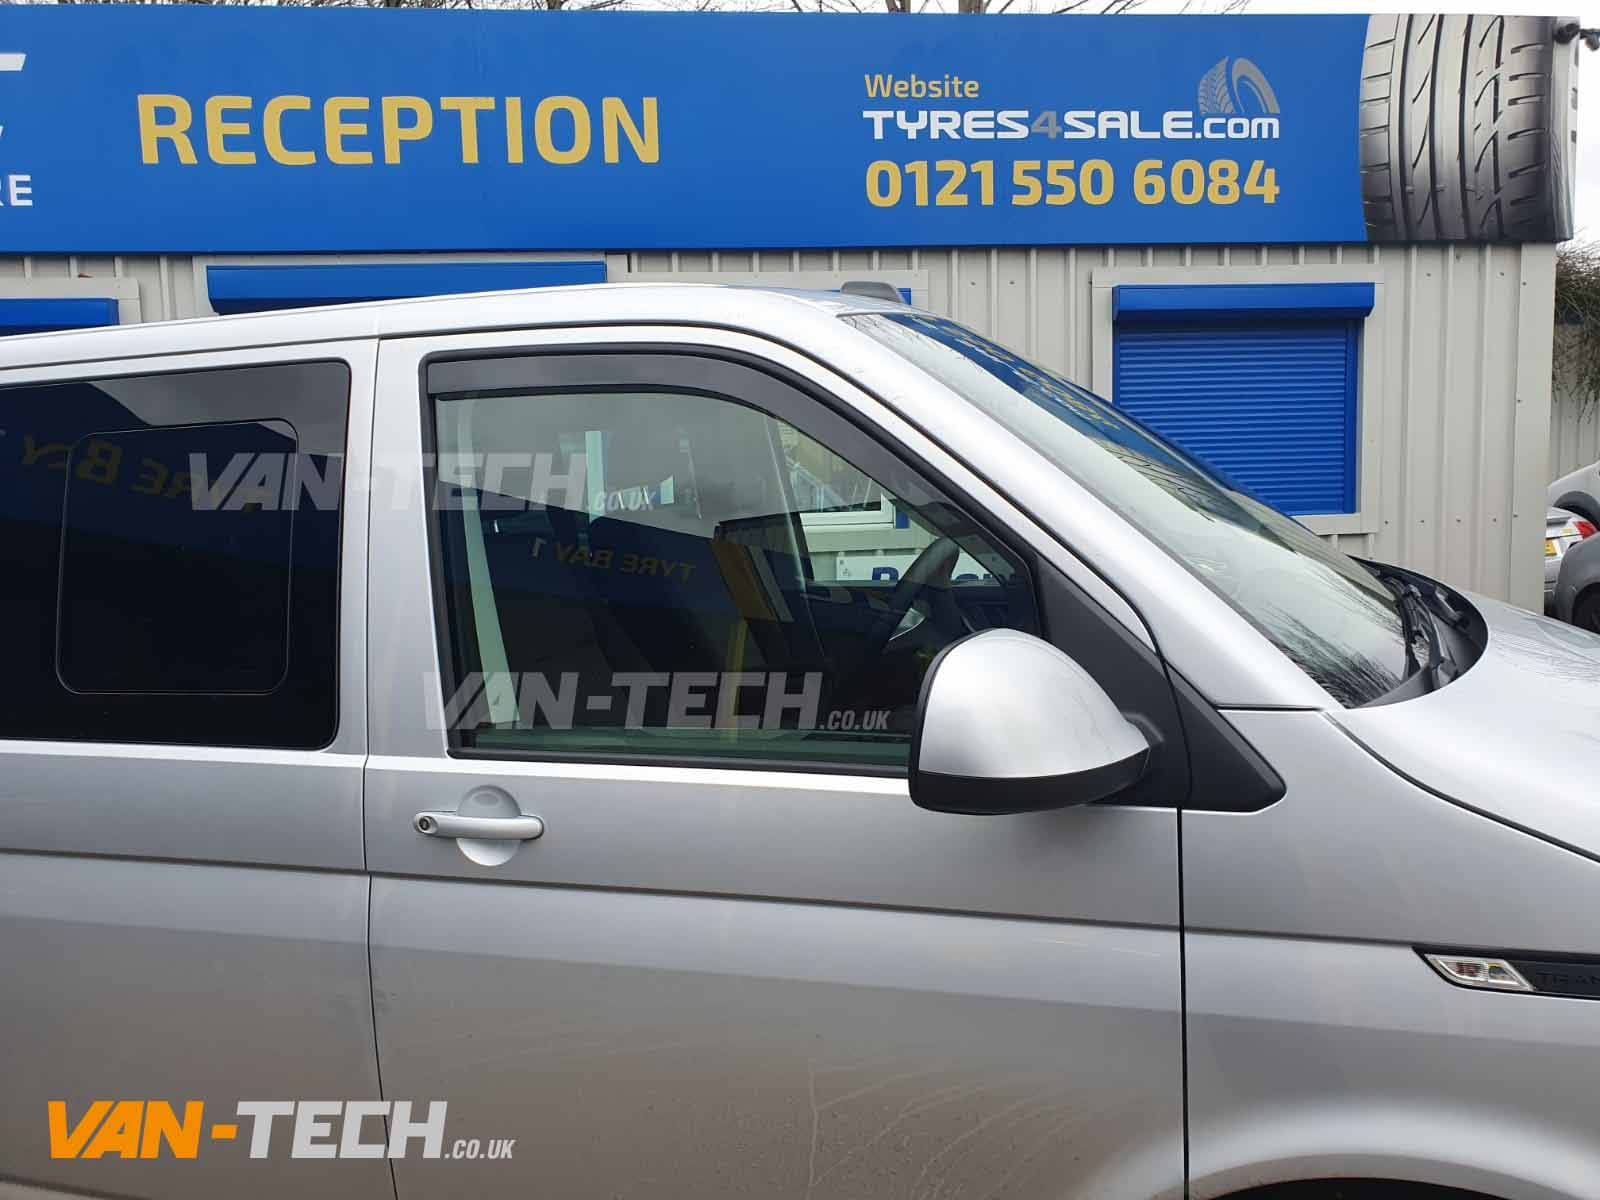 VW Transporter T6.1 Parts and Acessories Wind Deflectors, Bonnet Deflector and Rear Bumper Protector!